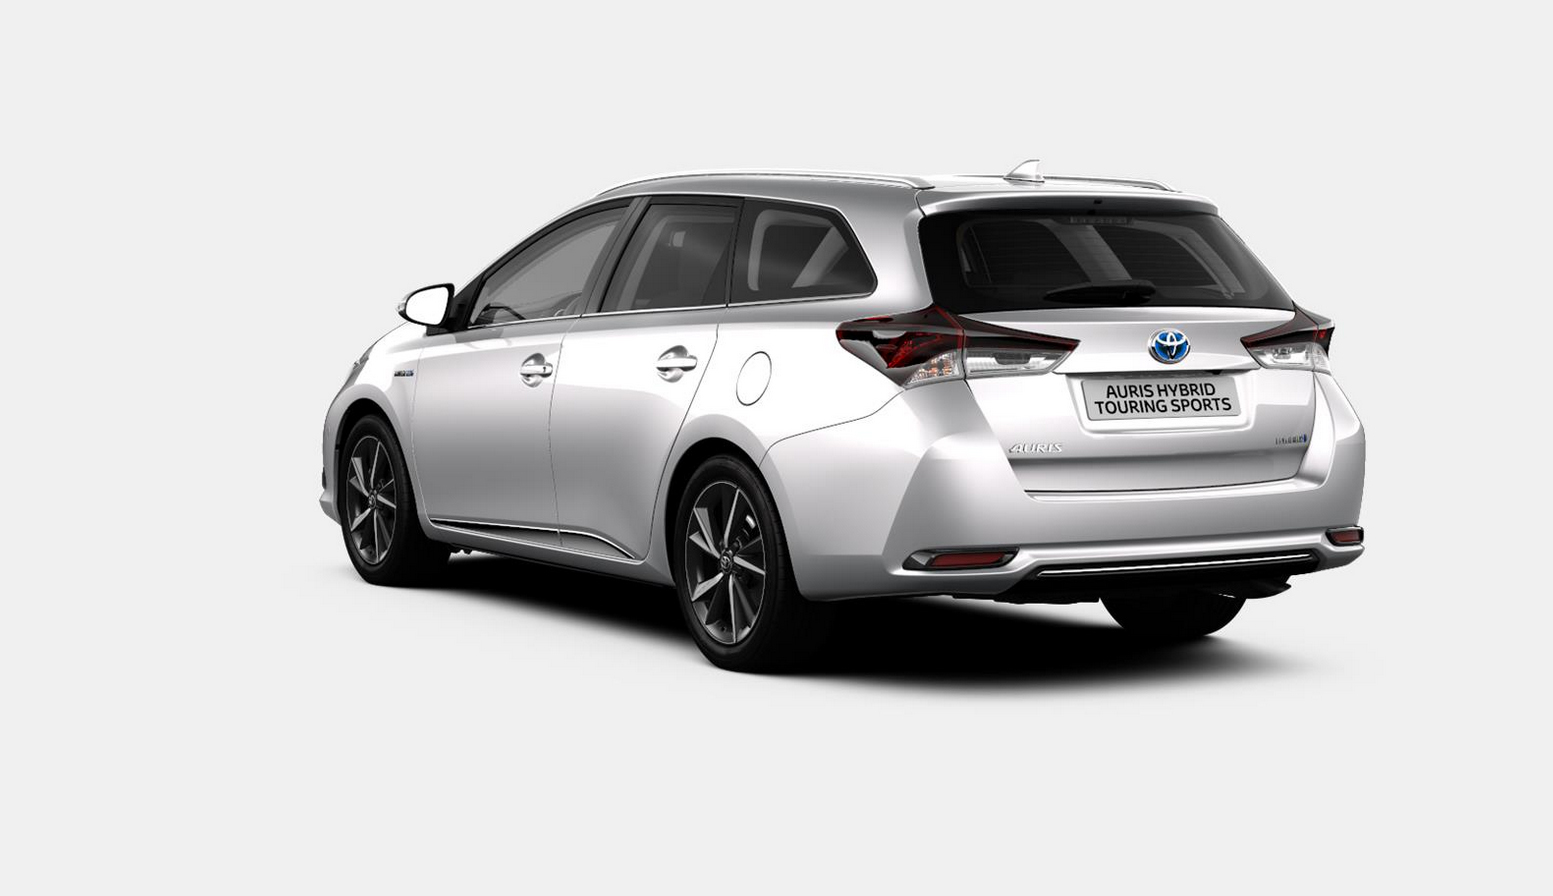 toyota auris touring sports eilander car lease gmbh. Black Bedroom Furniture Sets. Home Design Ideas